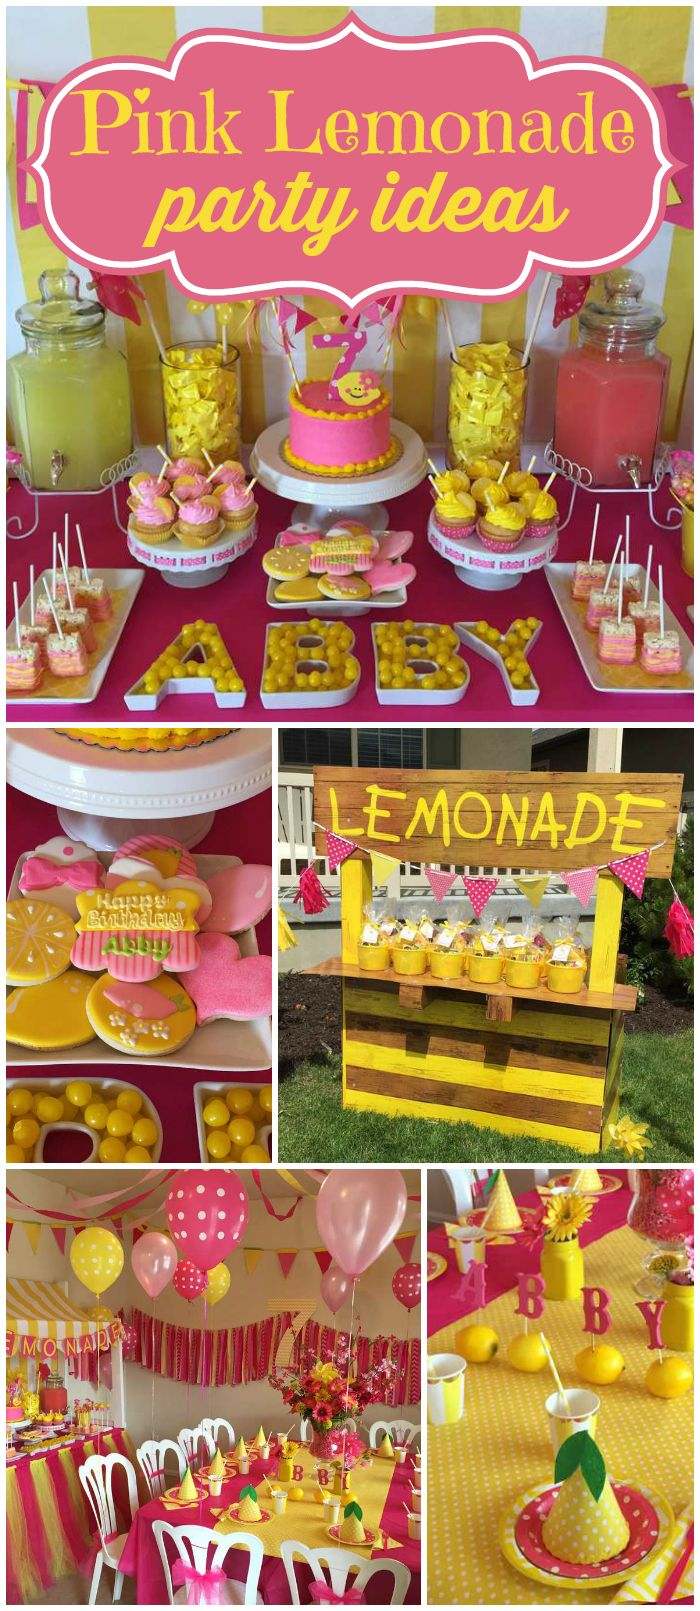 You won't believe this fantastic pink lemonade party! See more party ideas at Ca…